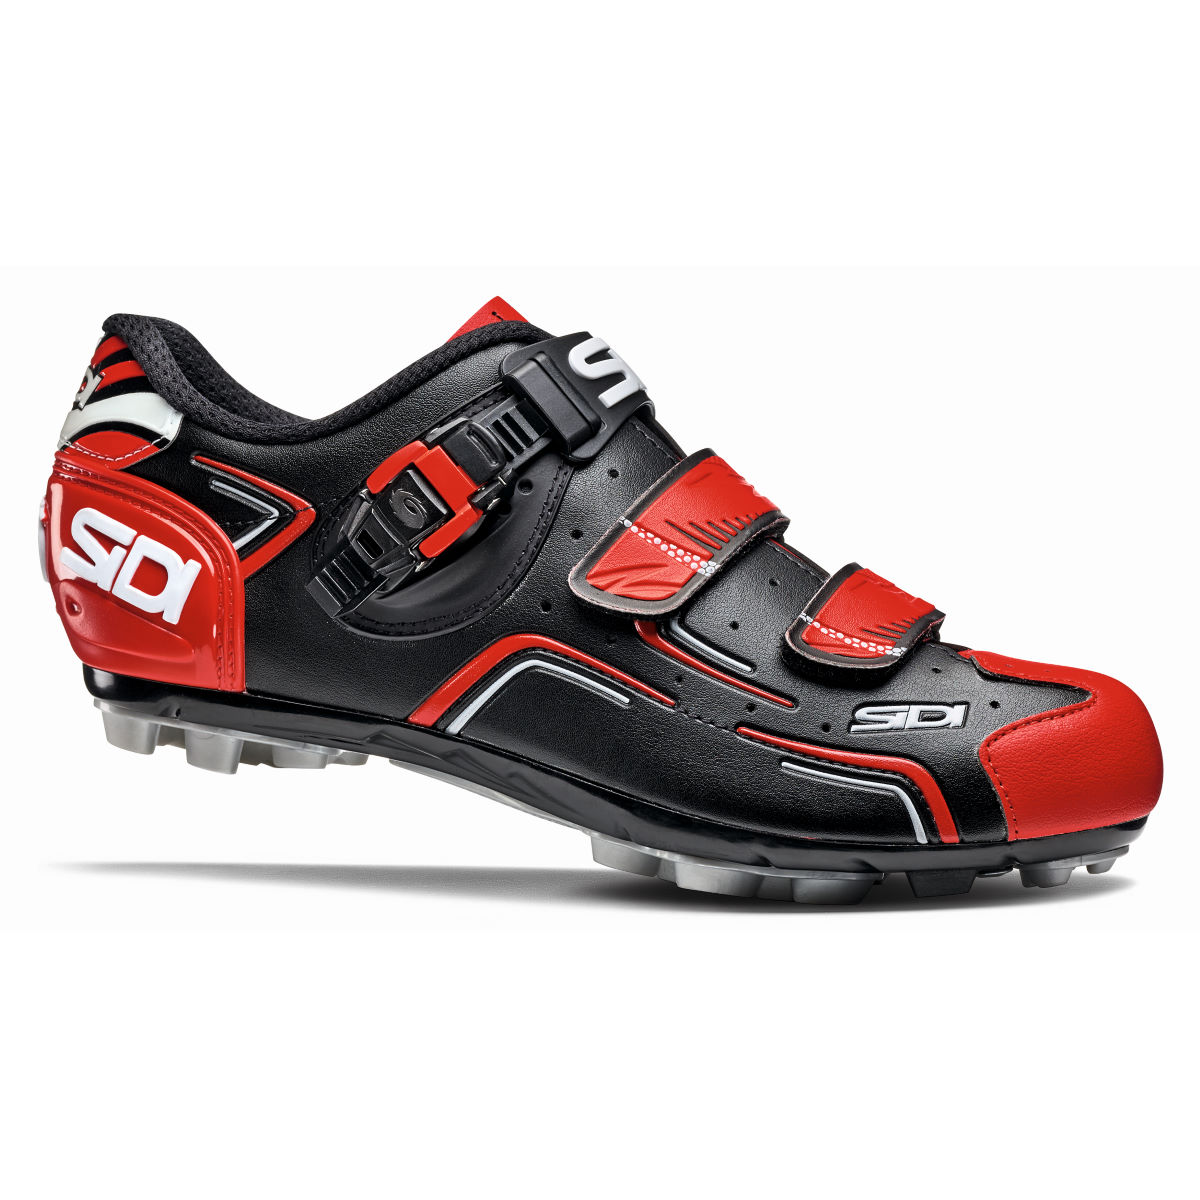 Sidi Buvel MTB Shoes - 39 Black/Red/White | Offroad Shoes